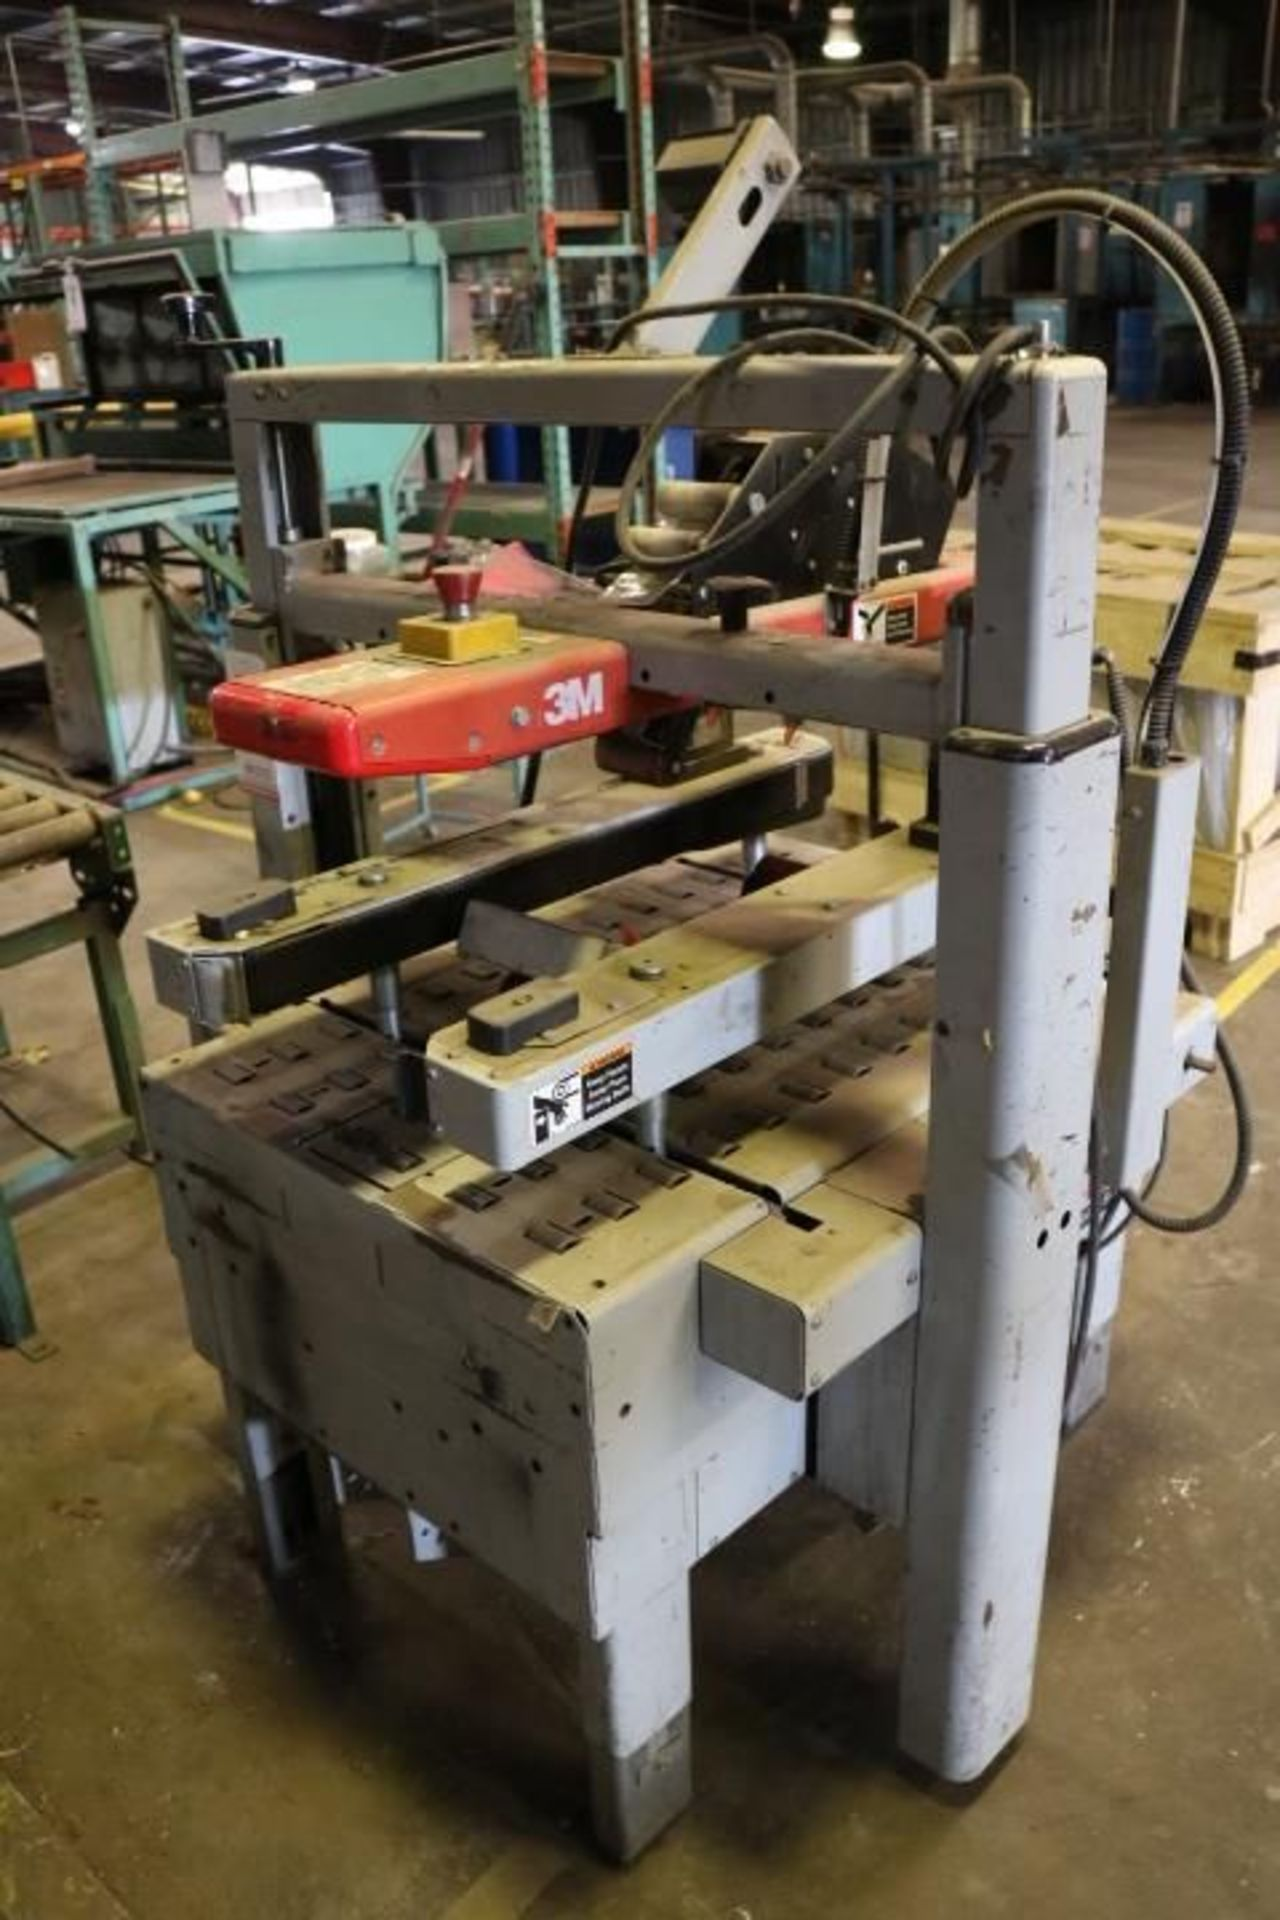 Lot 12 - 3M-MATIC 800A3 ADJUSTABLE CASE SEALER, TYPE 39600, S/N 5897, STATIONARY